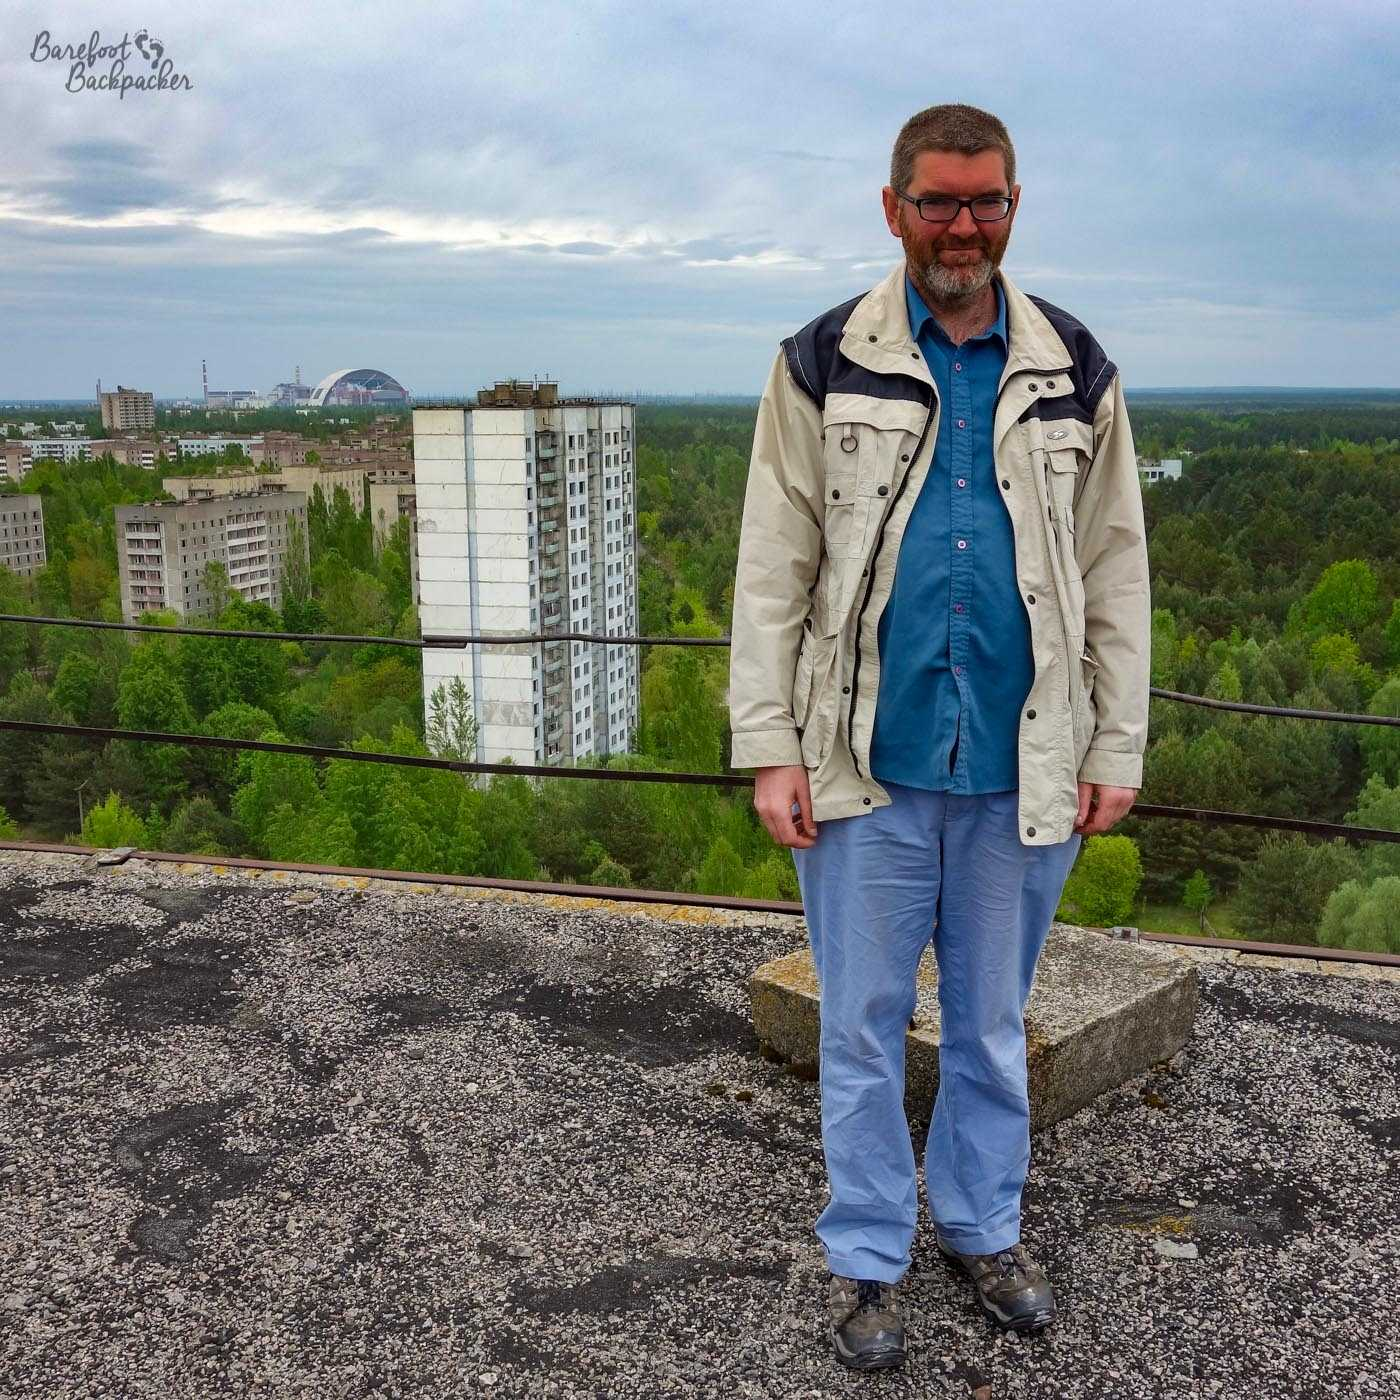 A man stands on the roof of a tower block, in front of a somewhat less than convincing low metal framework serving as a barrier. He's mainly dressed in blue (shirt, trousers) and has a beige-white coat. In the background is a landscape made up almost entirely of trees. A couple of other tower blocks and tenement blocks are in the background, their upper floors just visible through the trees. In the background is a weird arch and a couple of beacons. The region is almost completely flat. This is Pripyat, Ukraine; the arch and beacon are located at the Chernobyl Nuclear Power Plant.